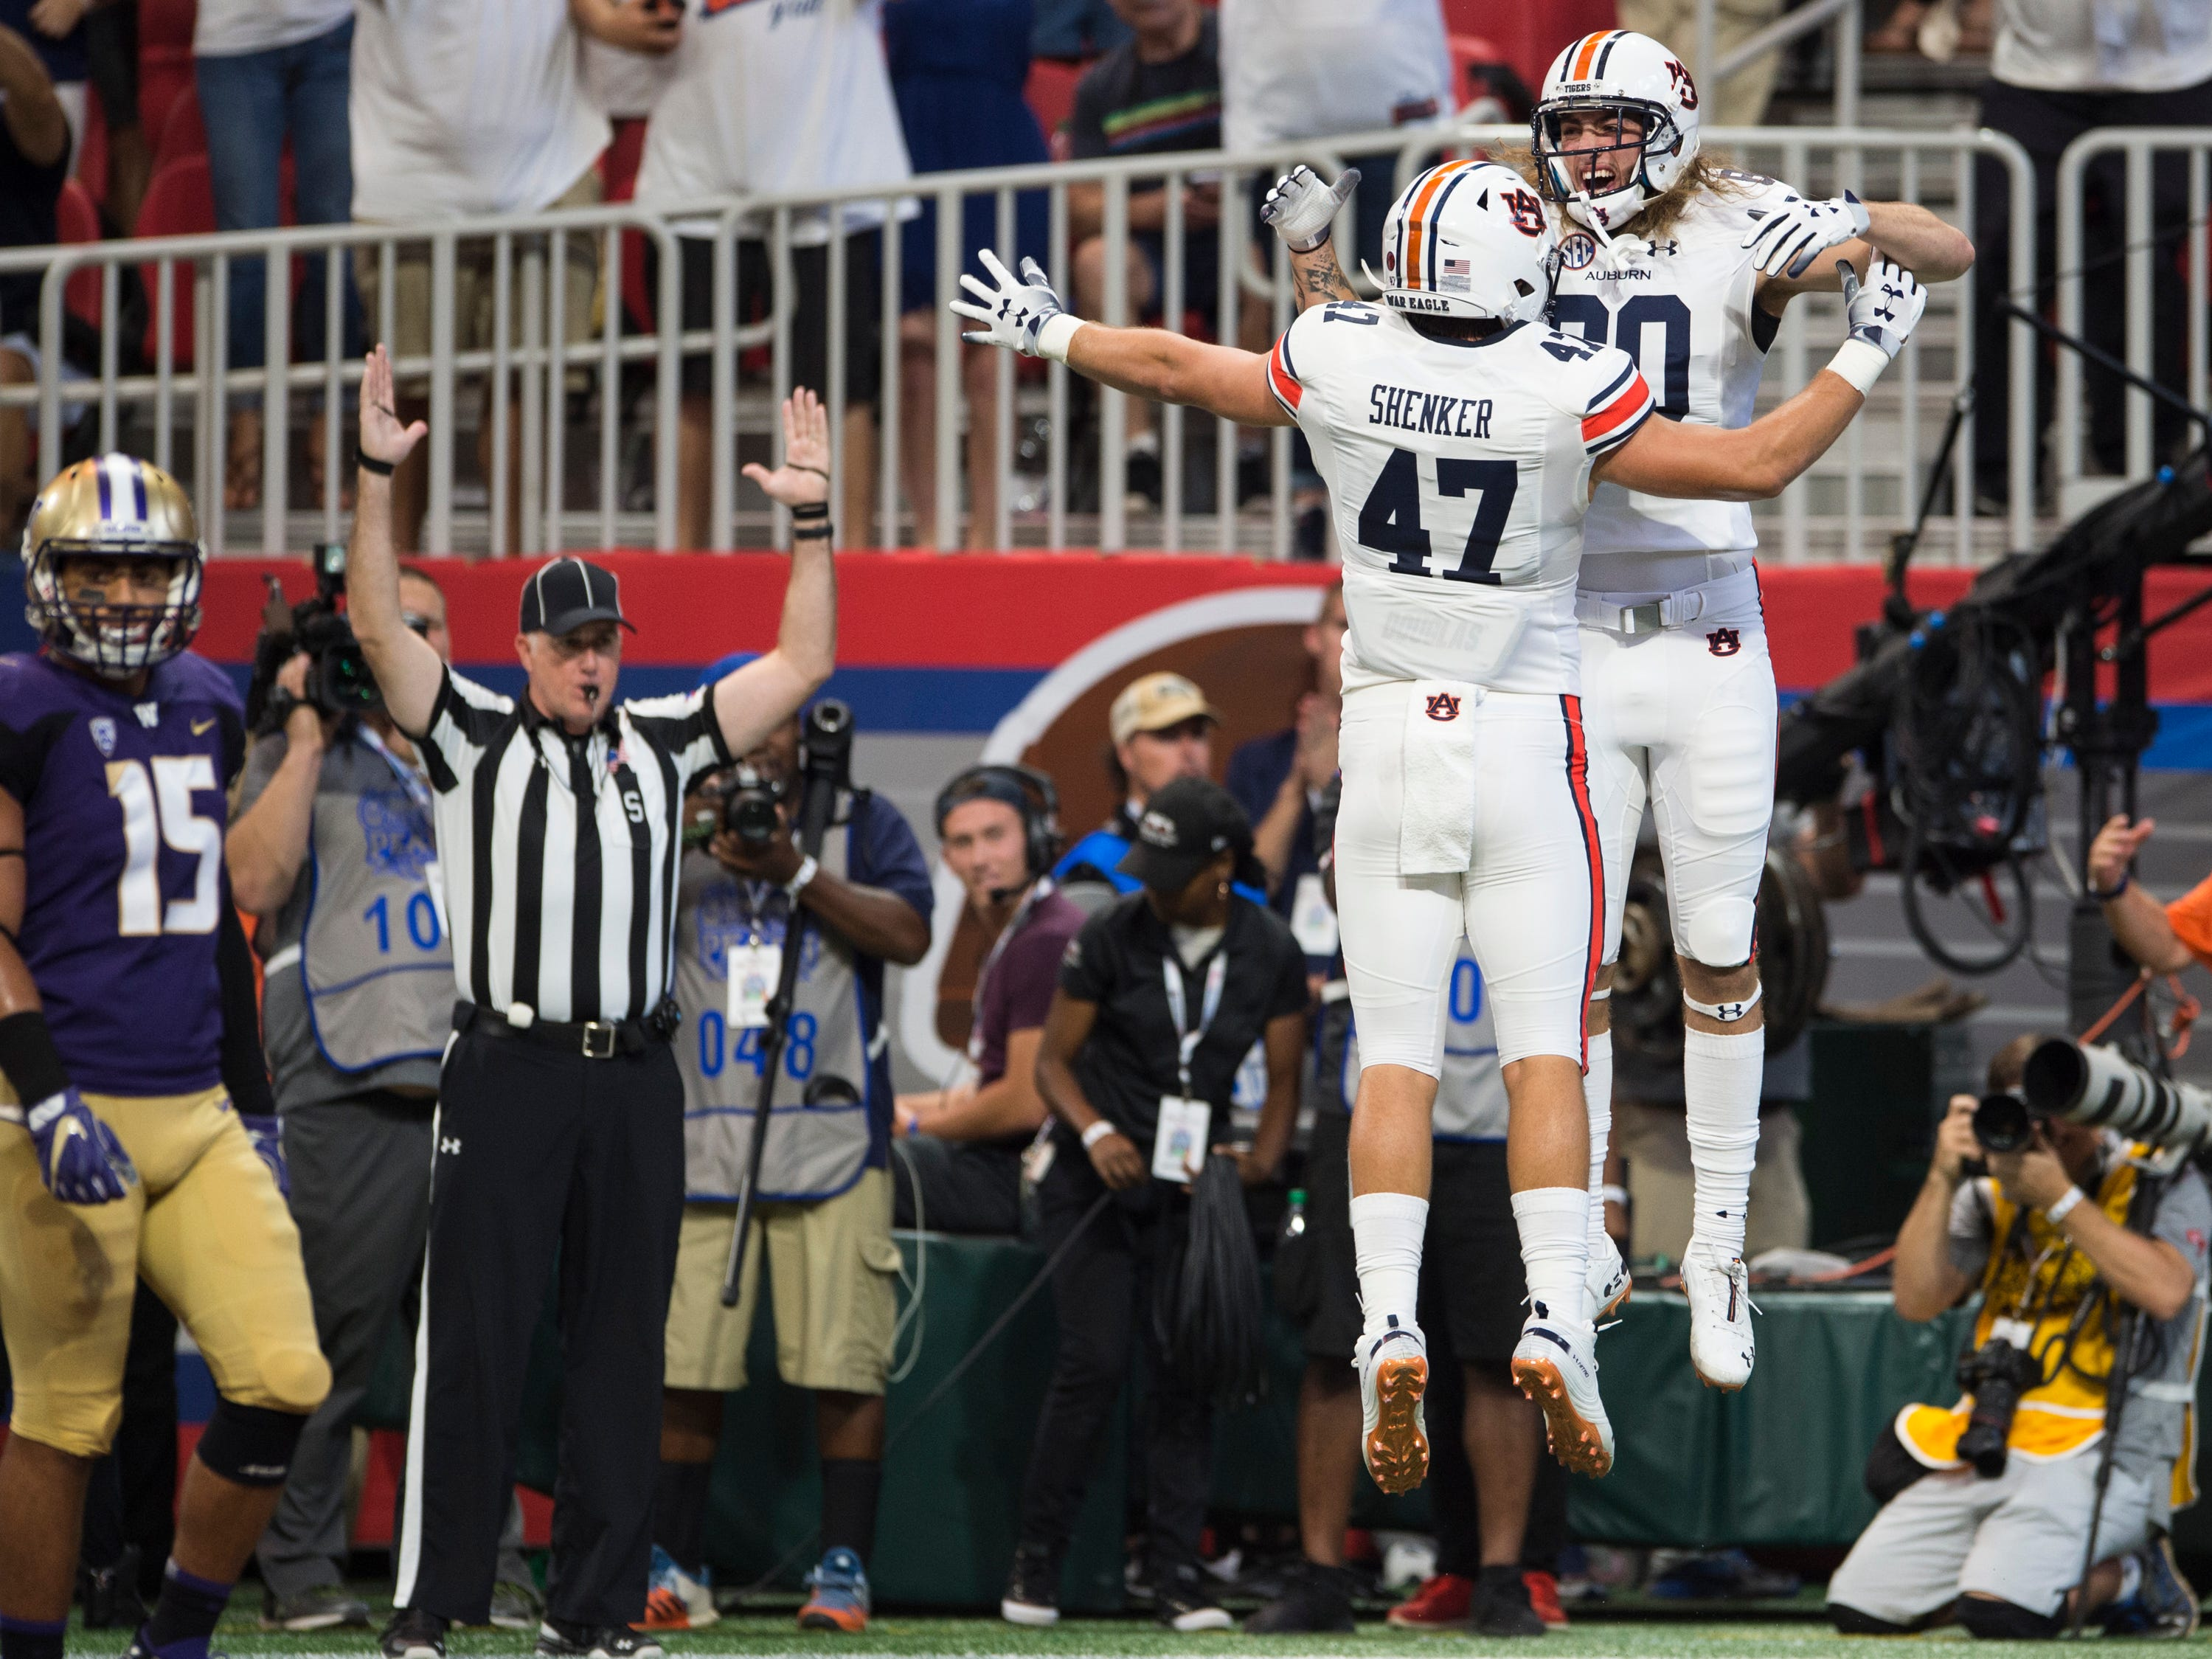 Auburn's John Samuel Shenker (47) and Auburn's Sal Cannella (80) celebrate Cannella's touchdown catch against Washington at Mercedes-Benz Stadium in Atlanta, Ga., on Saturday, Sept. 1, 2018. Auburn leads Washington 15-13 at halftime.